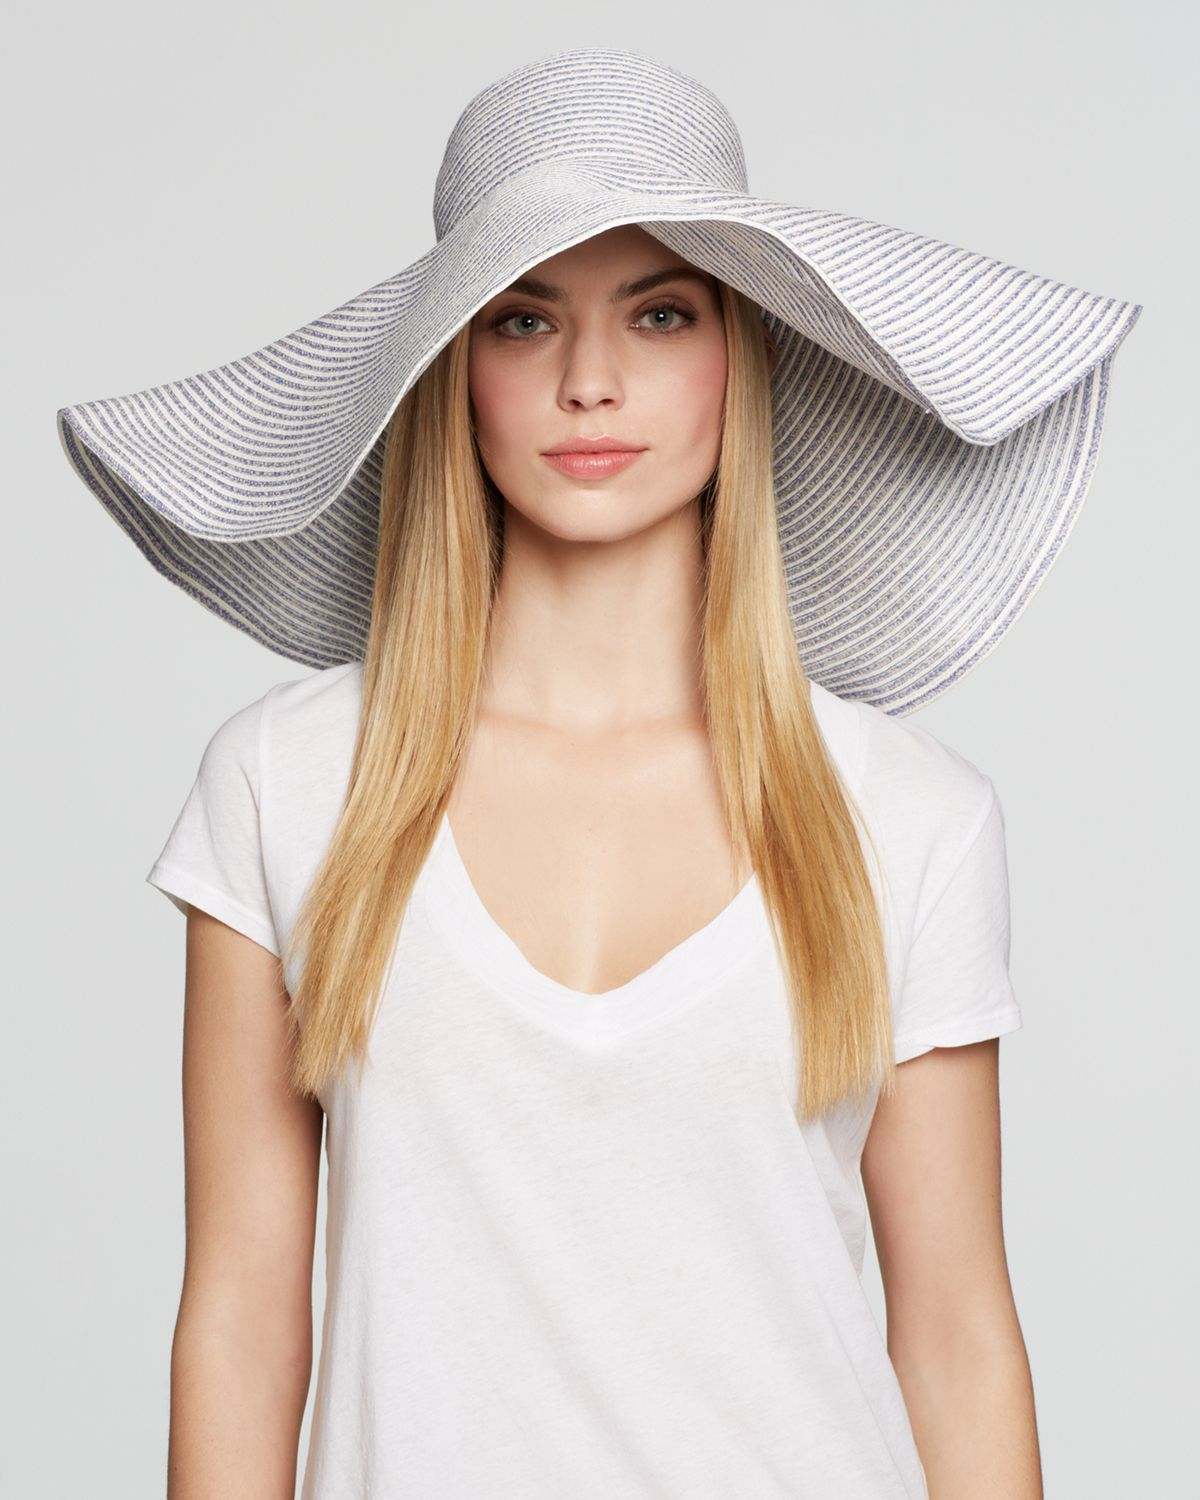 62e148e2bd52a0 Aqua Extra Large Floppy Wired Brim Hat - Bloomingdale's Exclusive in ...